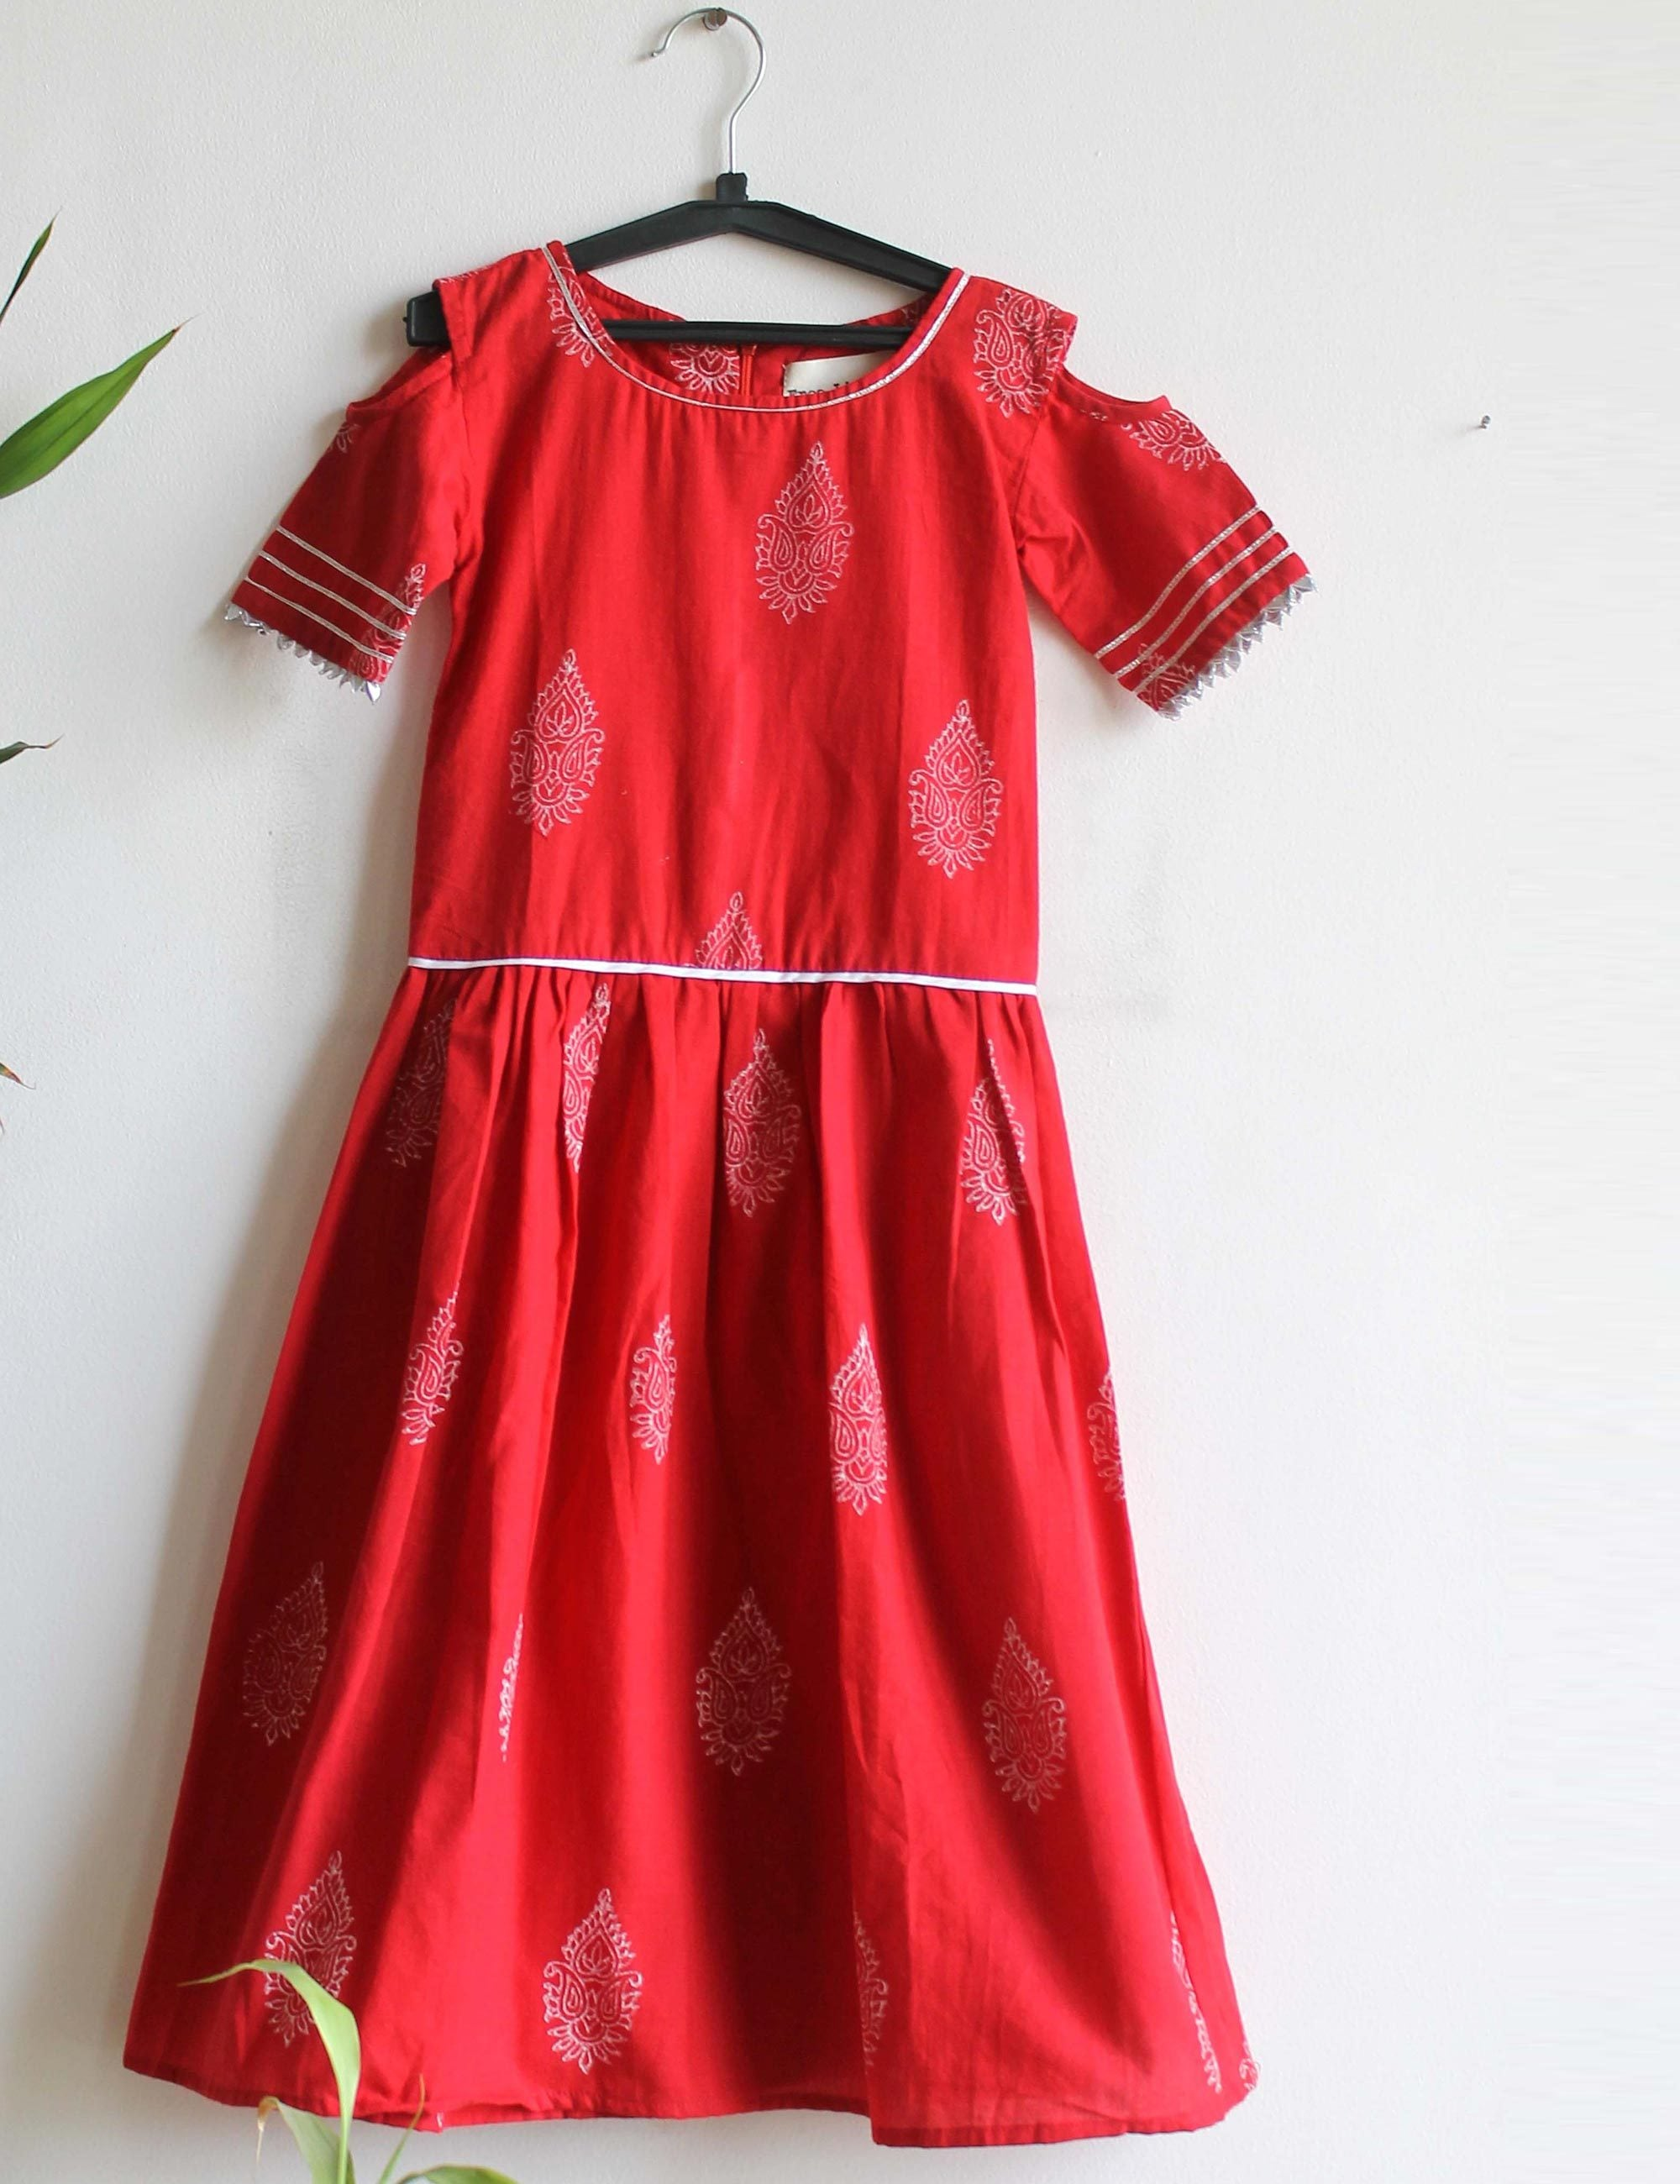 A Cold Shoulder Dress in Red Colour